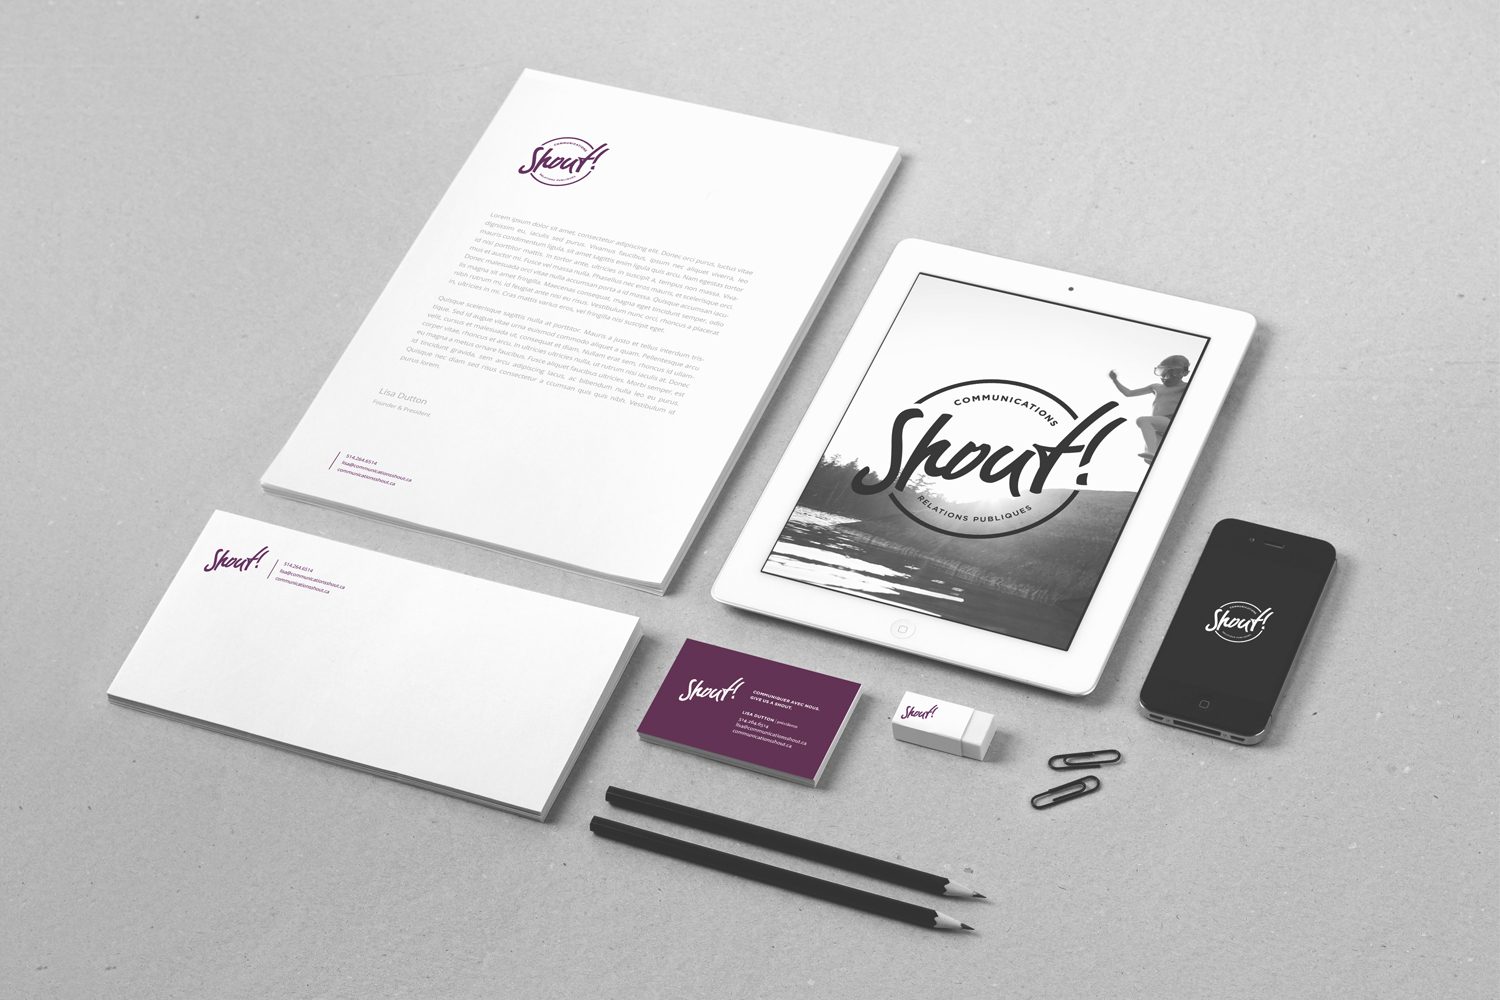 shout communications stationery layout, letterhead design, envelope design, business card design, logo over image of boy jumping into lake displayed on ipad, branding, public relations agency, print design